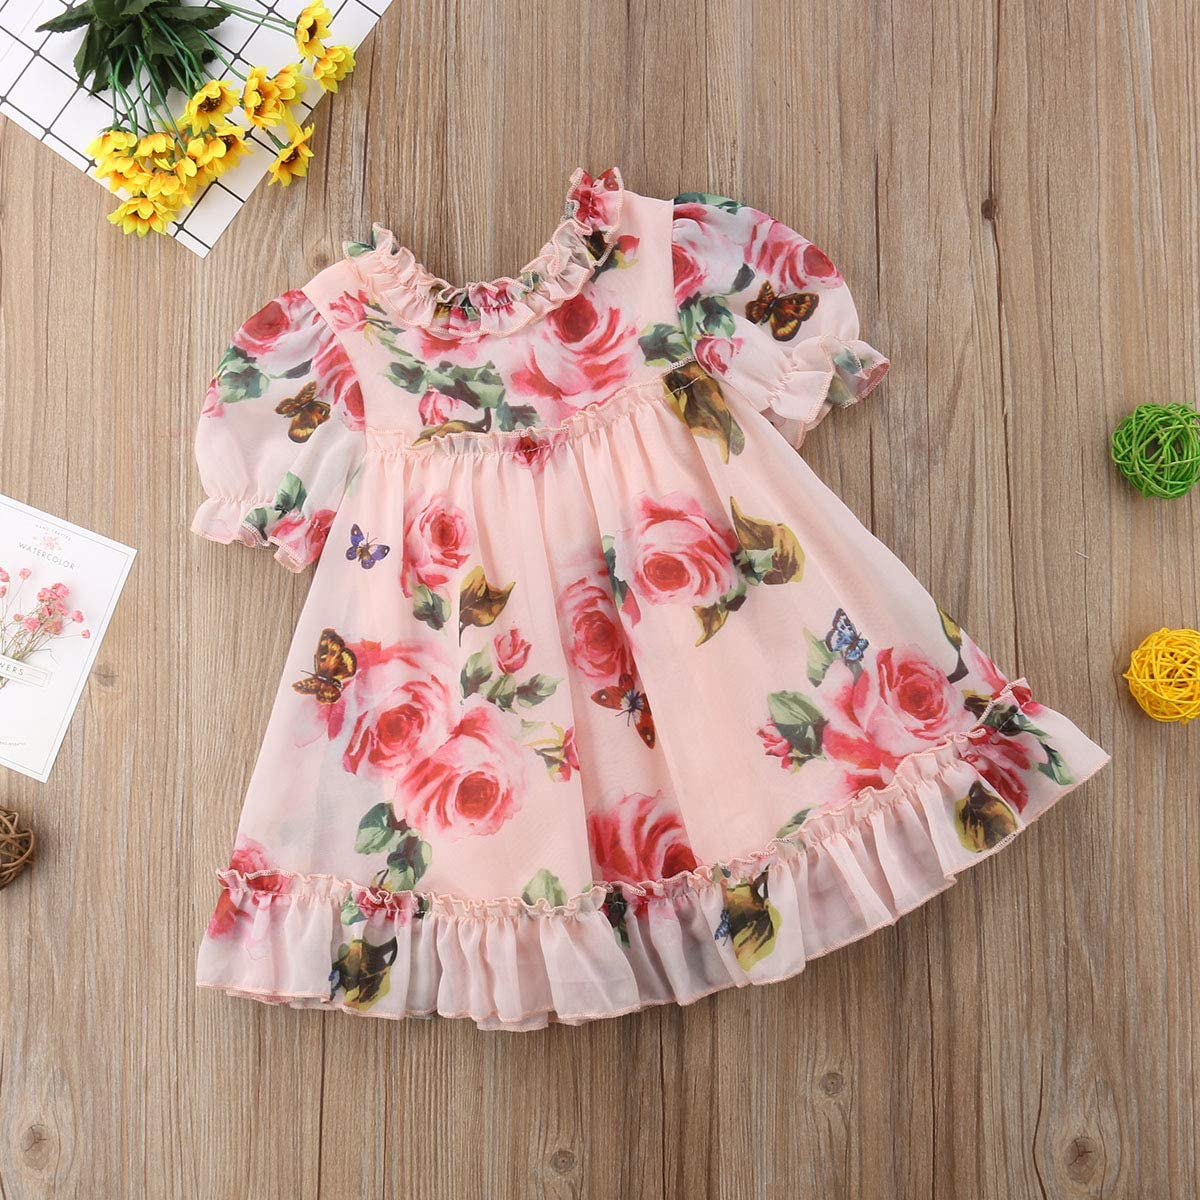 ZAXARRA Newborn Baby Girls Floral Dress Princess Party Pageant Tulle Ruffle Sundress